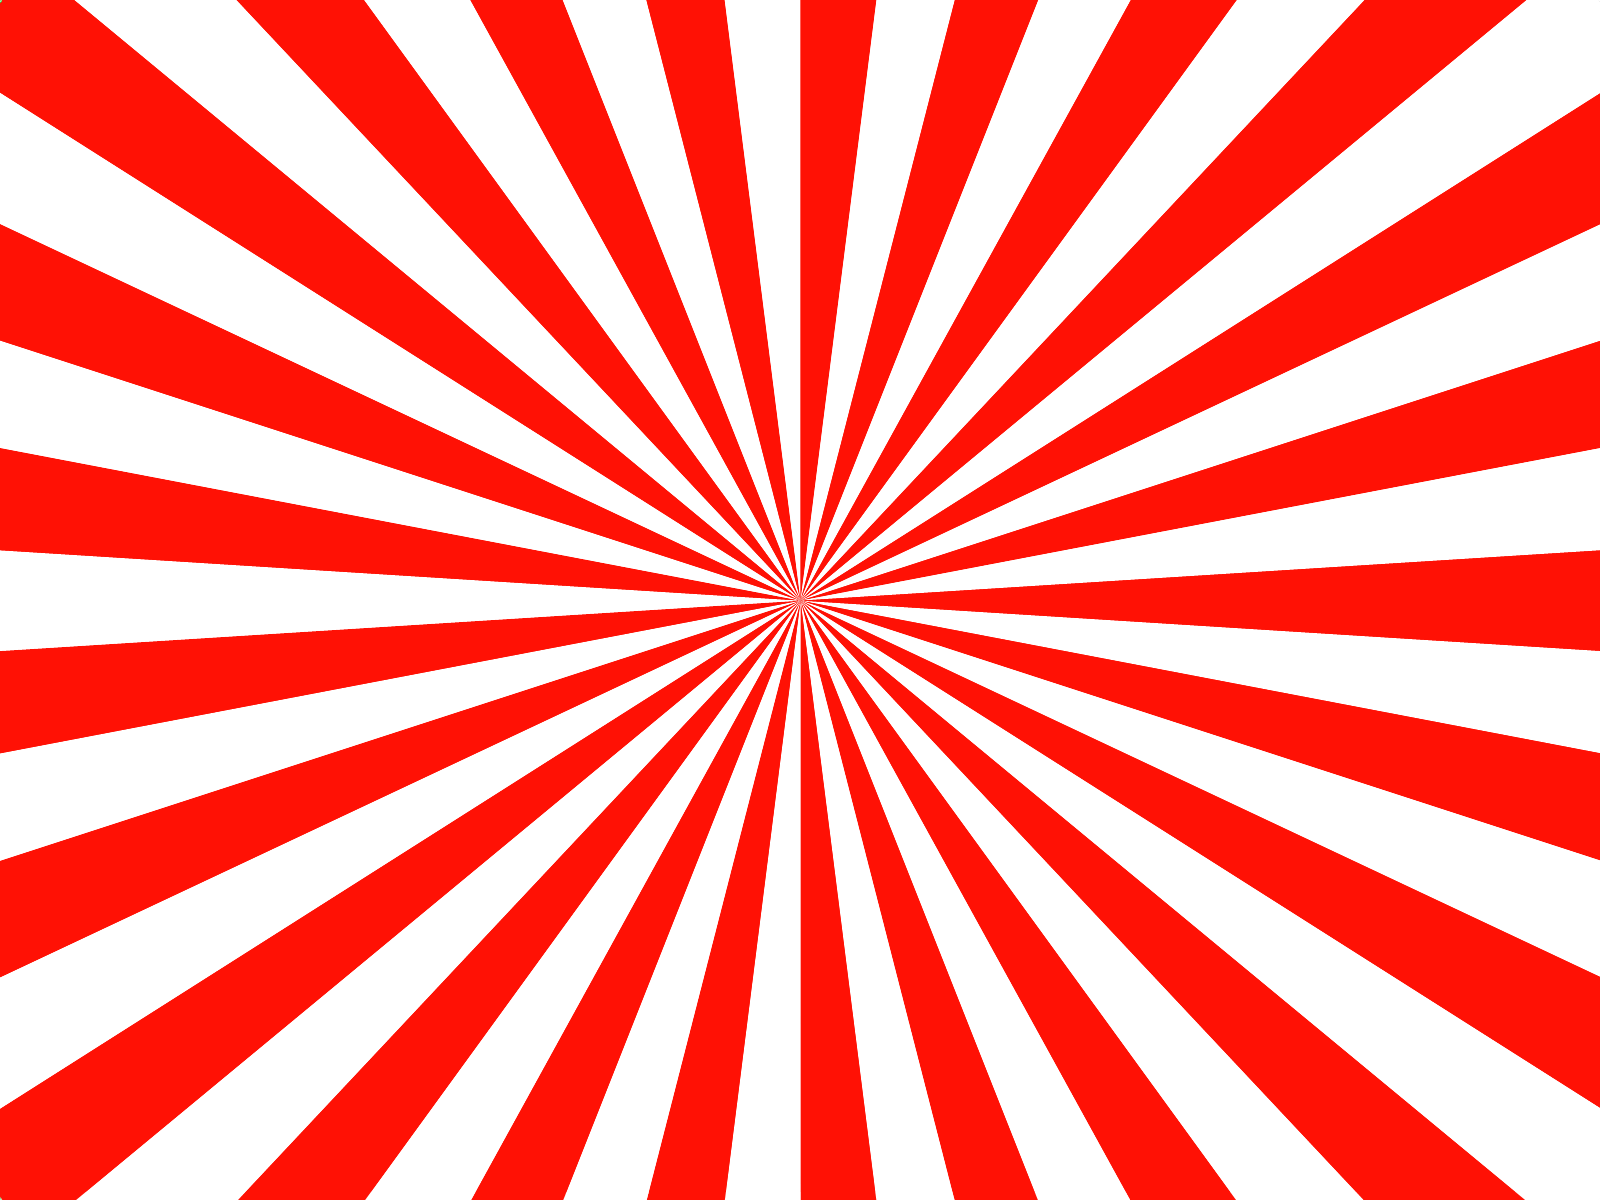 red stripes background by spooky-dream.deviantart.com on ...